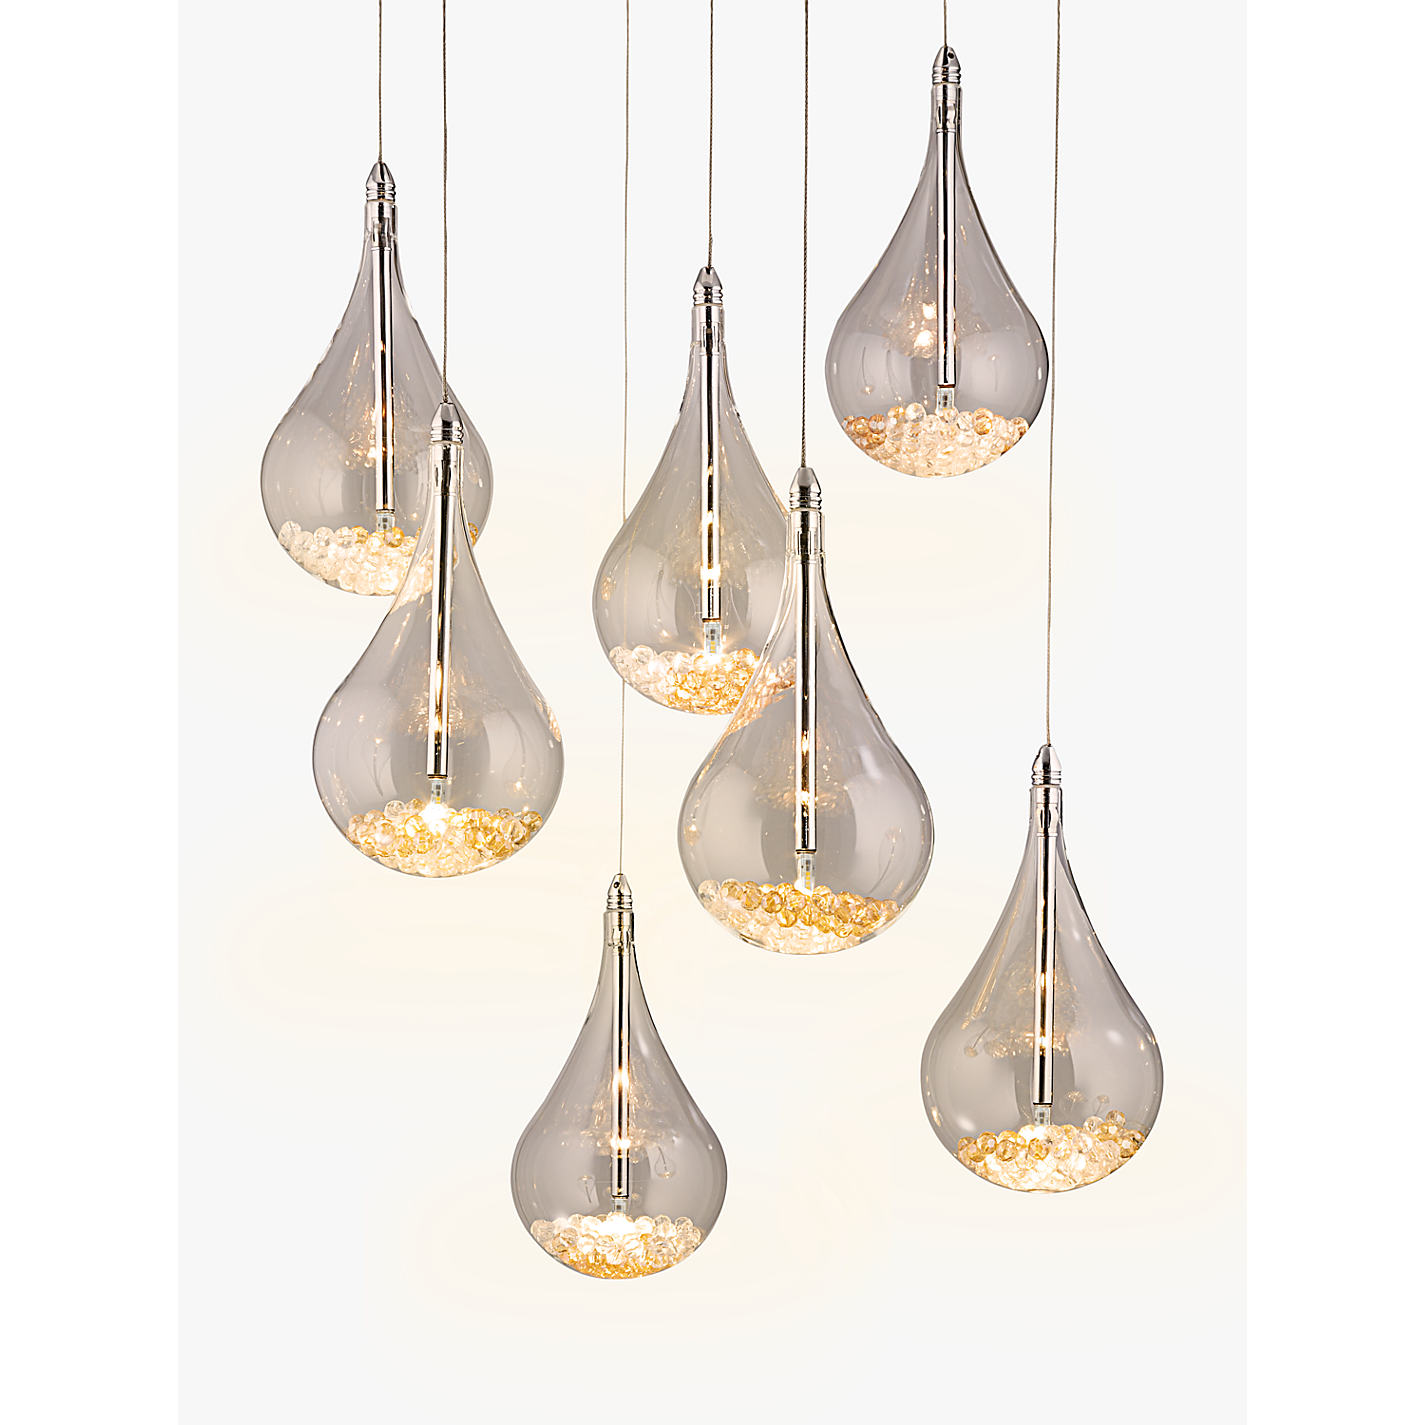 Buy john lewis sebastian 7 light led ceiling light chrome john buy john lewis sebastian 7 light led ceiling light chrome online at johnlewis aloadofball Gallery